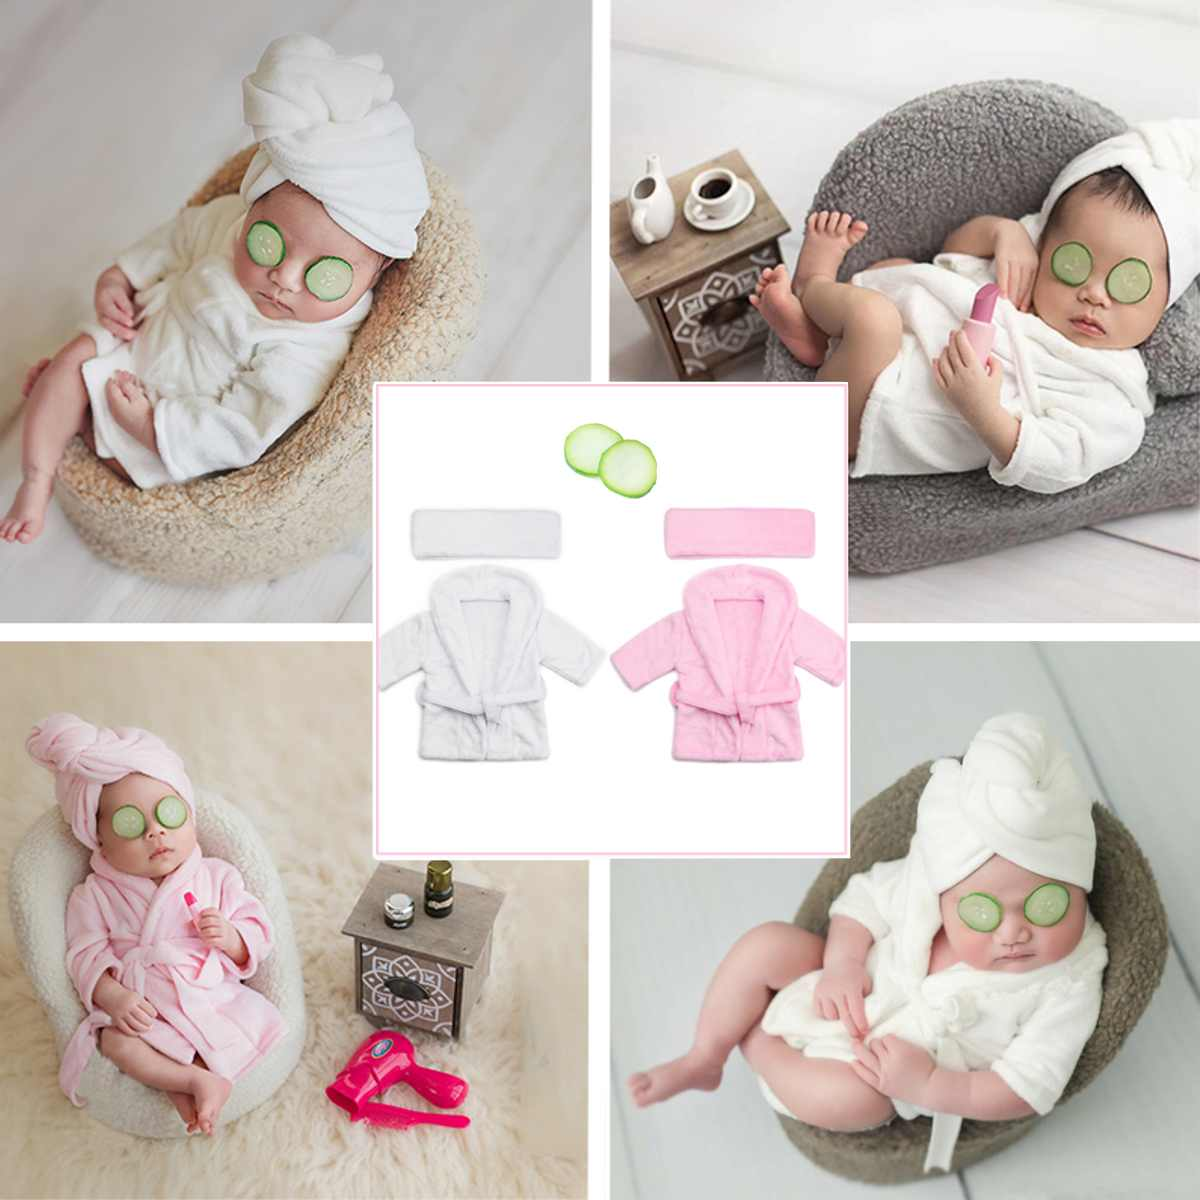 Newborn Baby 0~6 Months Old Baby Photography Prop Modeling Bathrobe Baby Bathrobe Suit For Photos